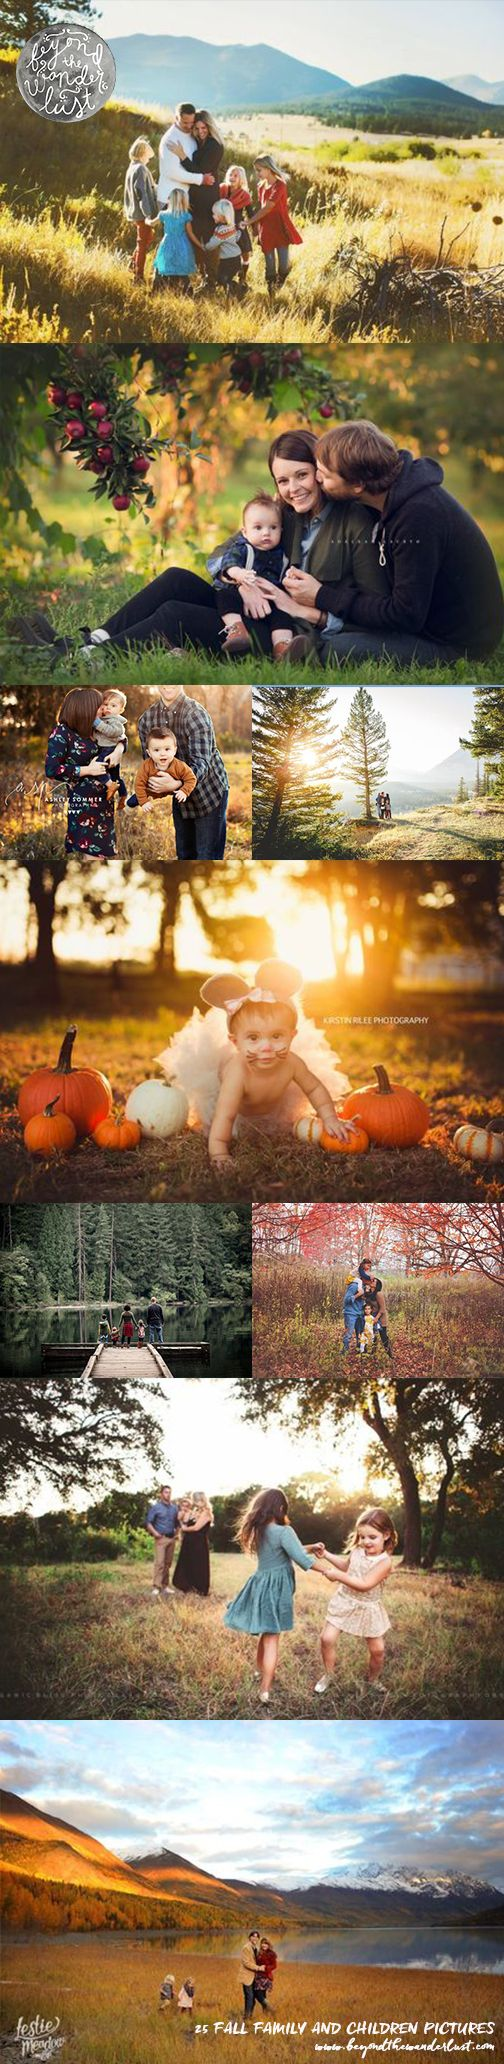 25 FALL FAMILY AND CHILDREN PICTURES, Fall family picture ideas, fall kid picture ideas